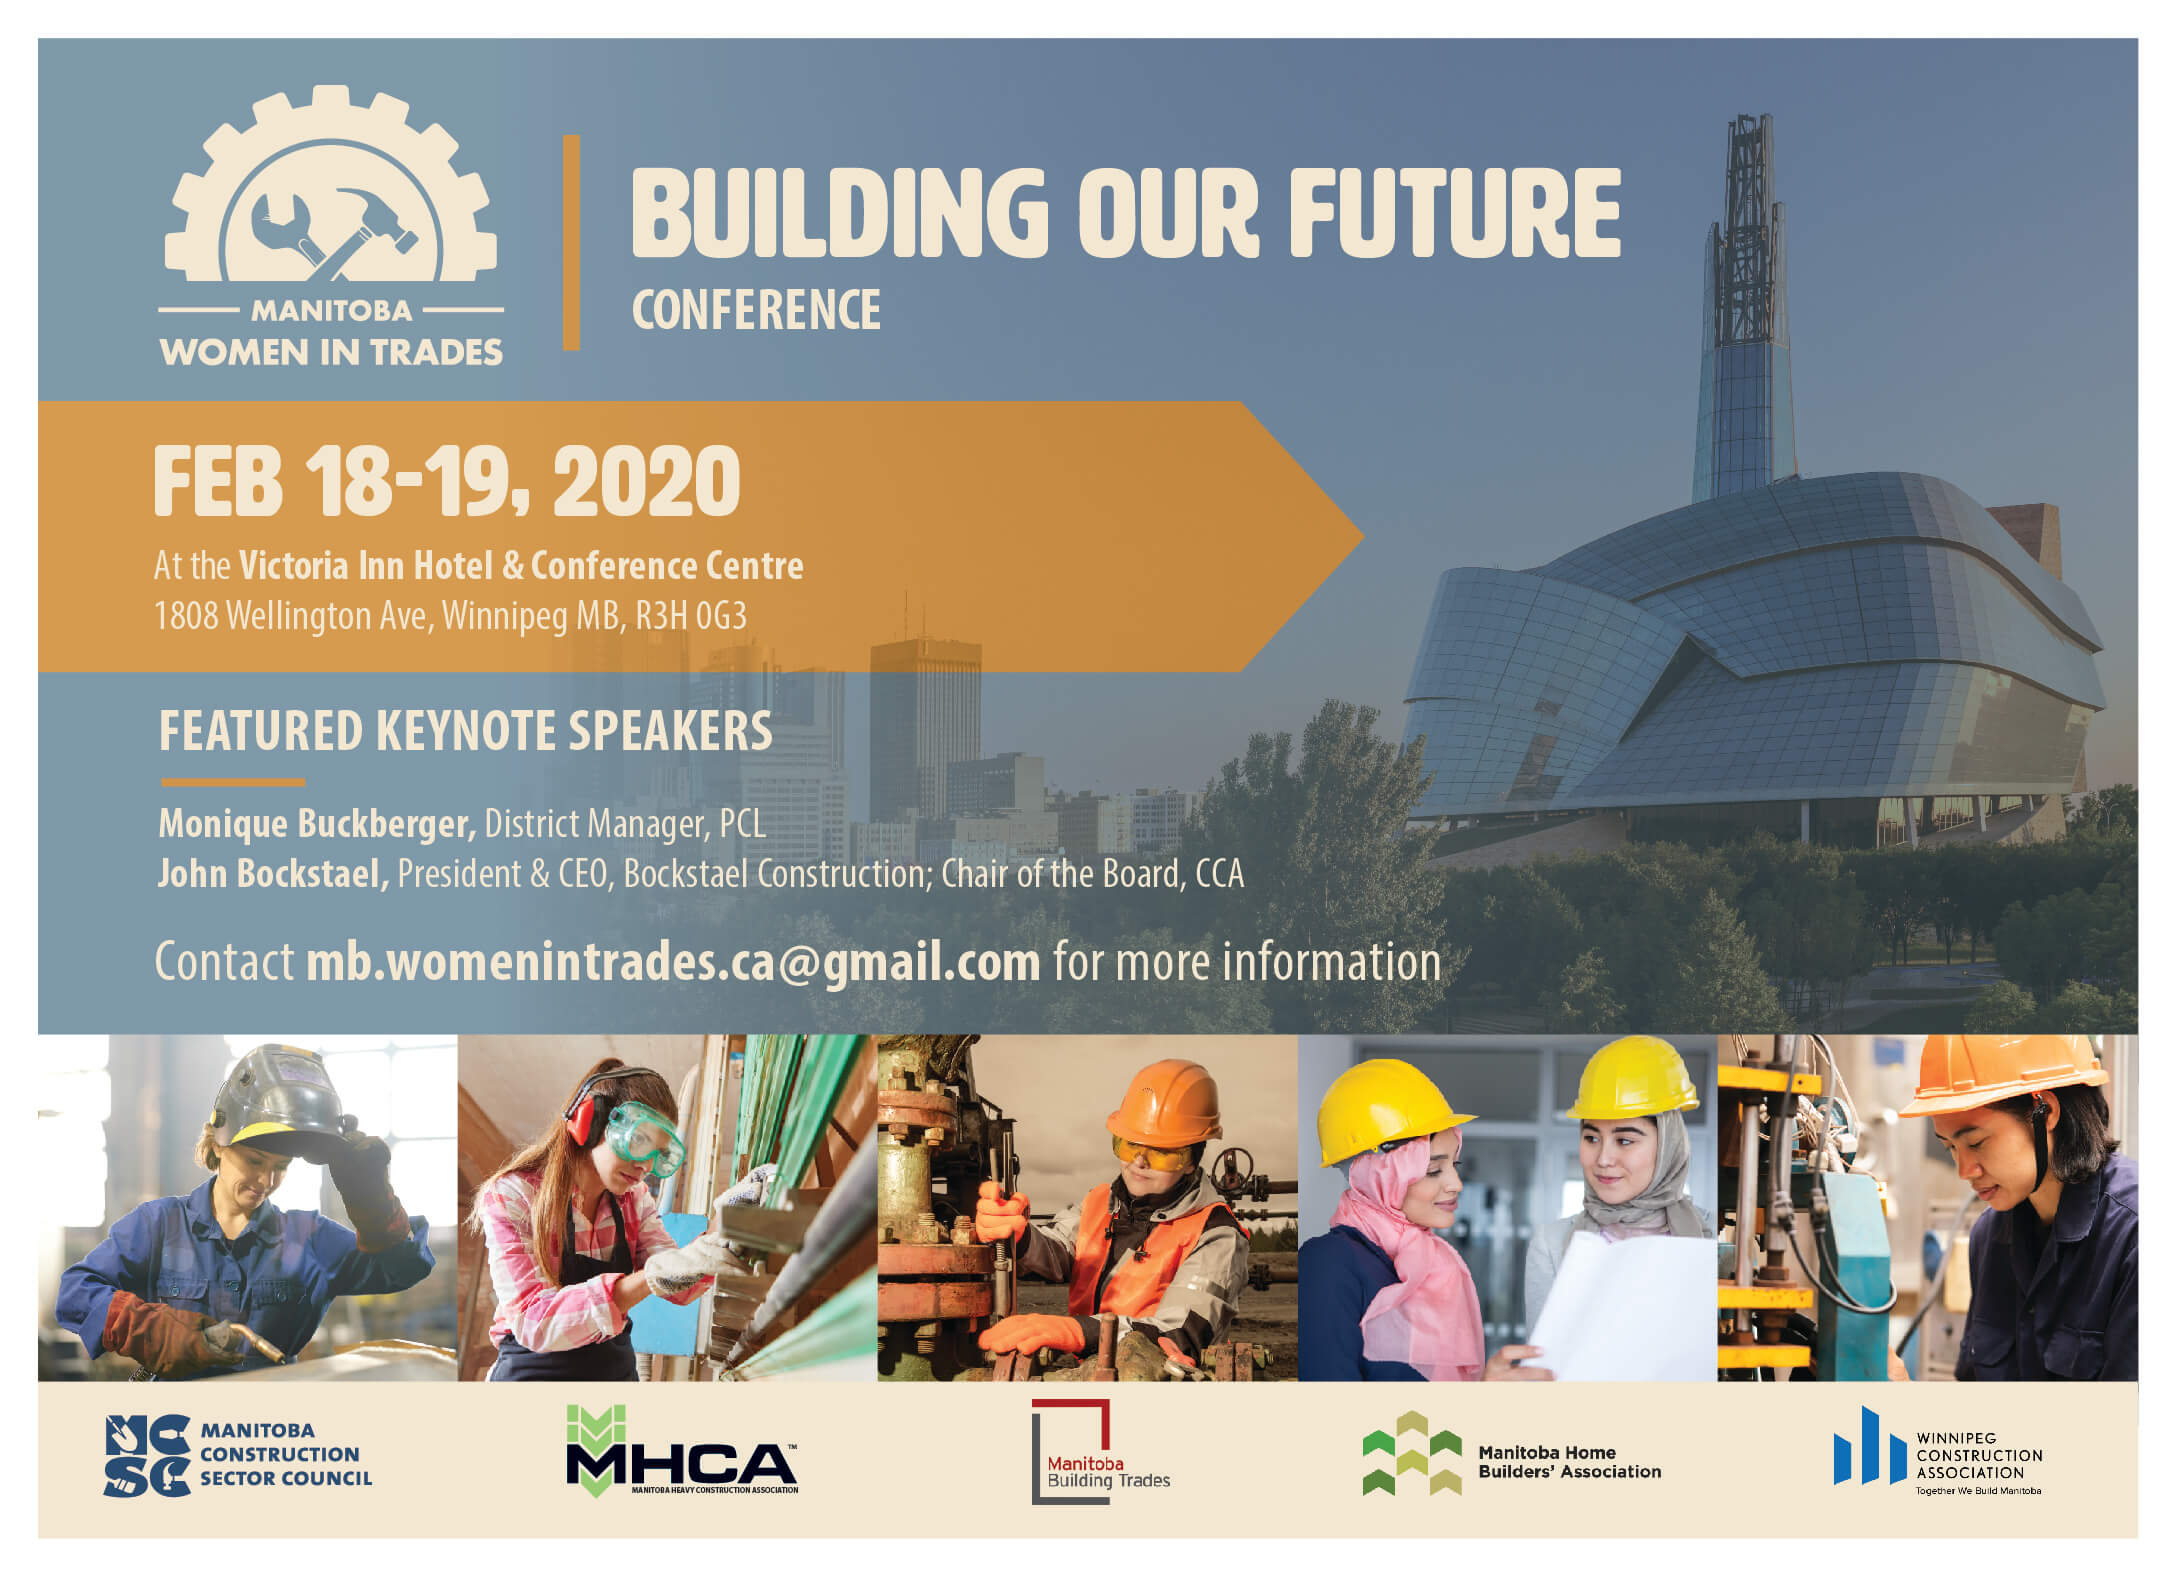 Image for MANITOBA WOMEN IN TRADES BUILDING OUR FUTURE CONFERENCE